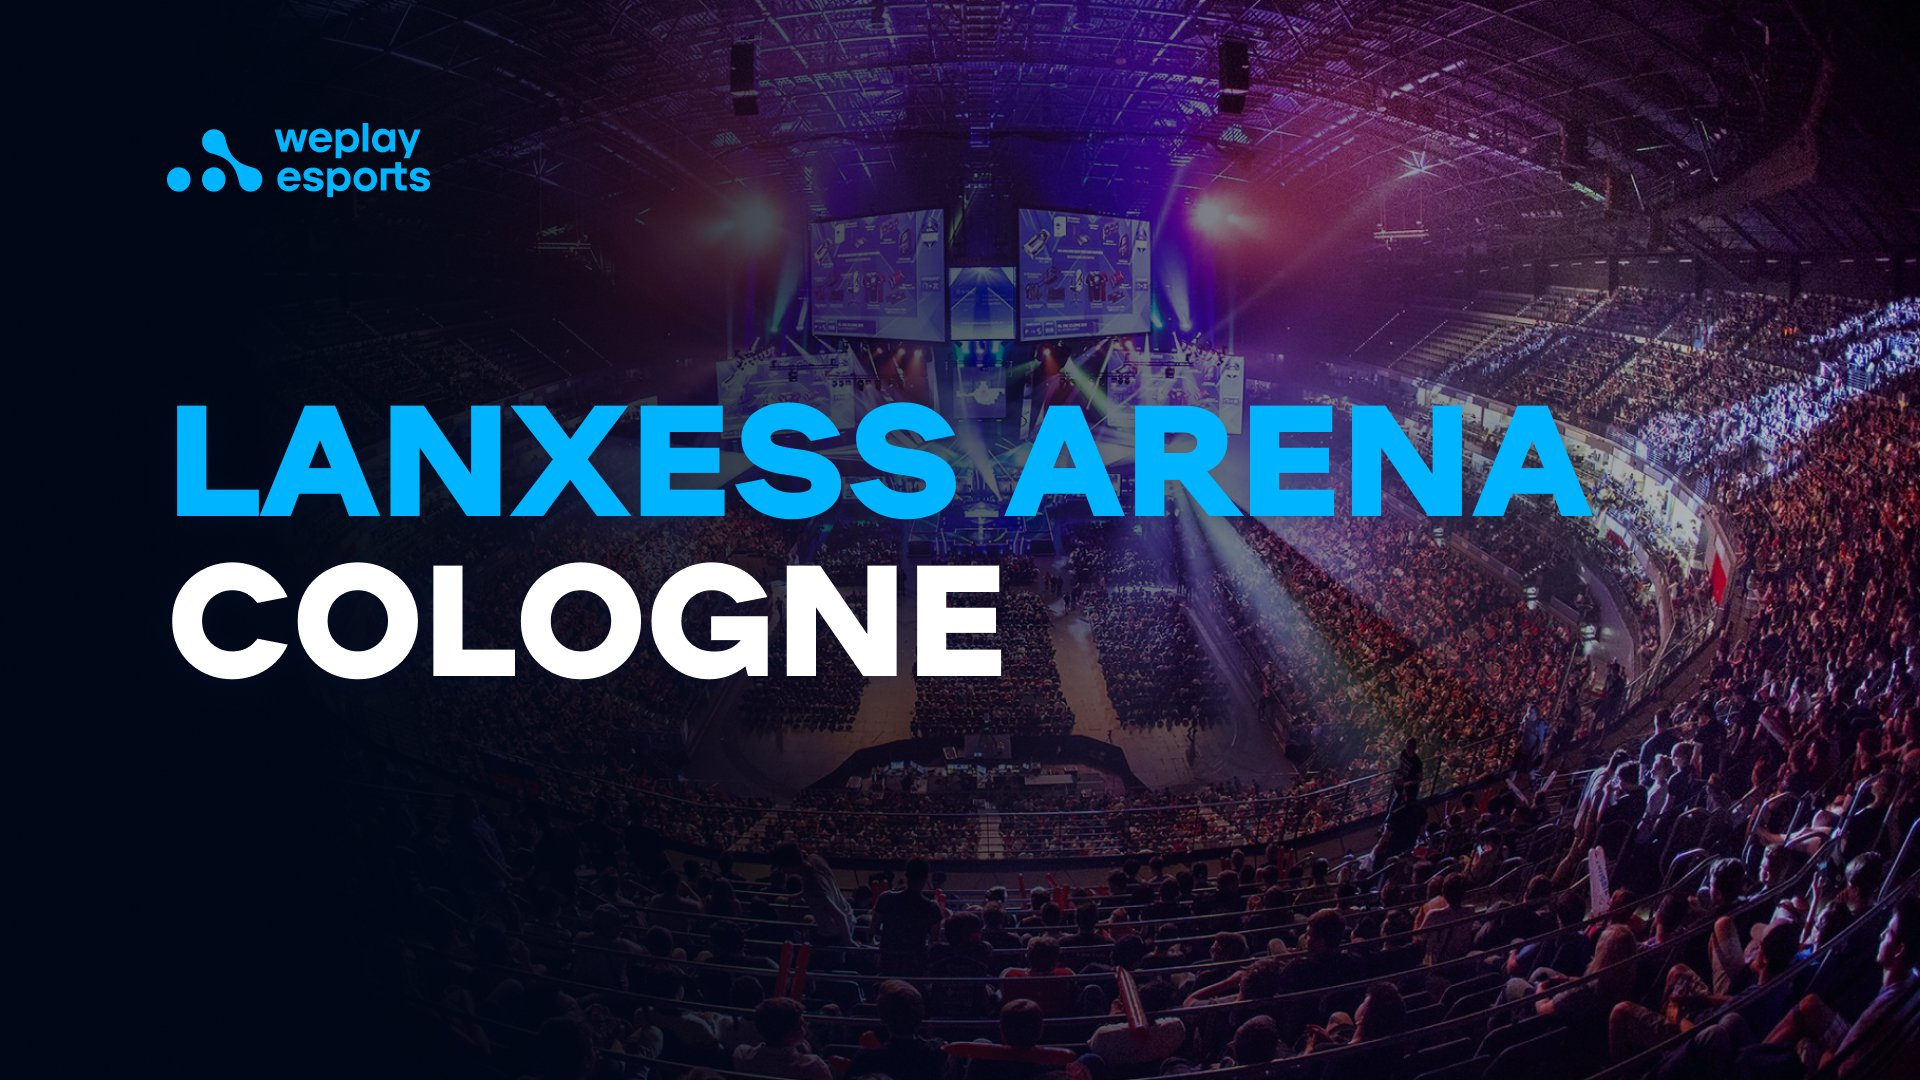 Laxness Arena Cologne